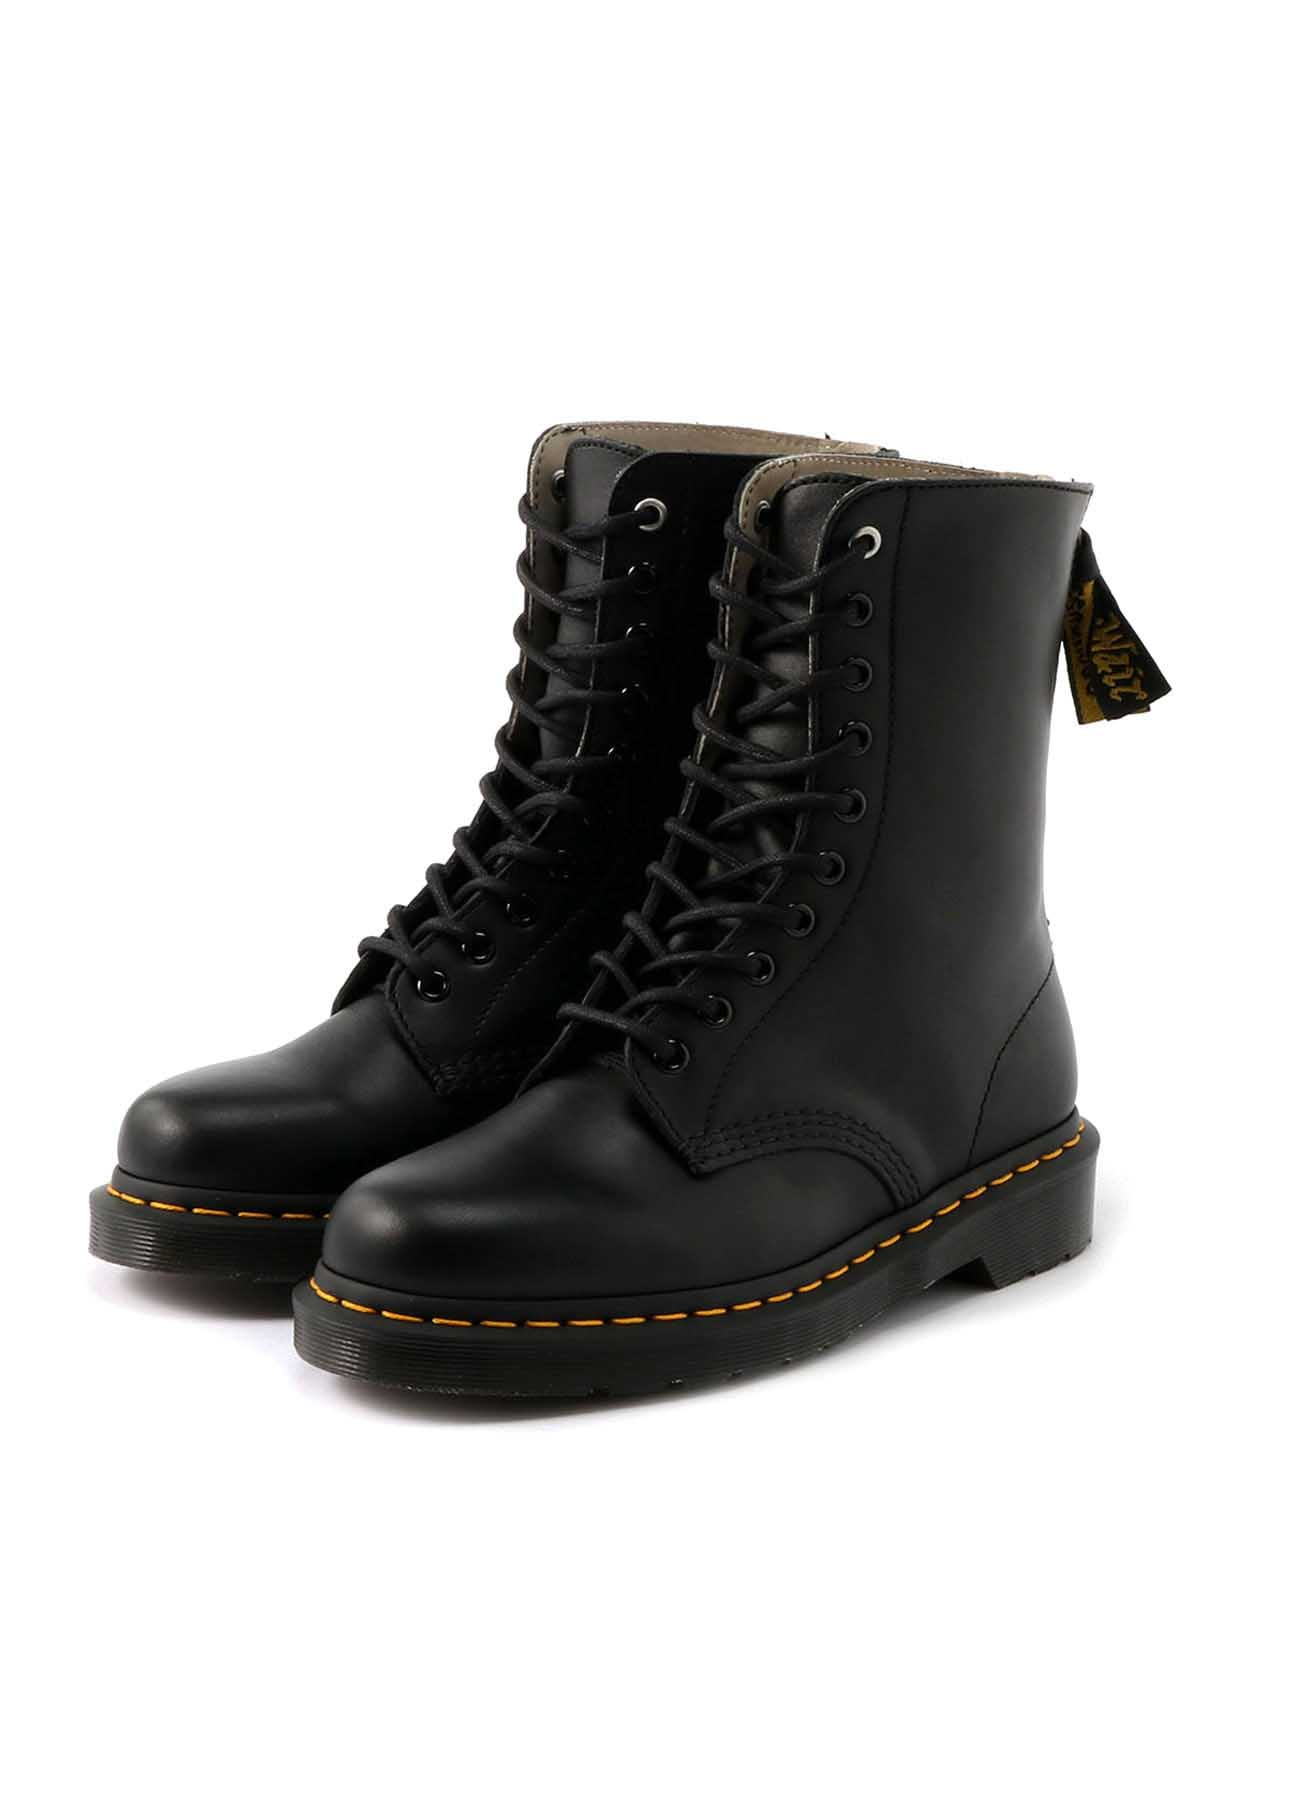 Y's x Dr.Martens 10HOLE BOOT